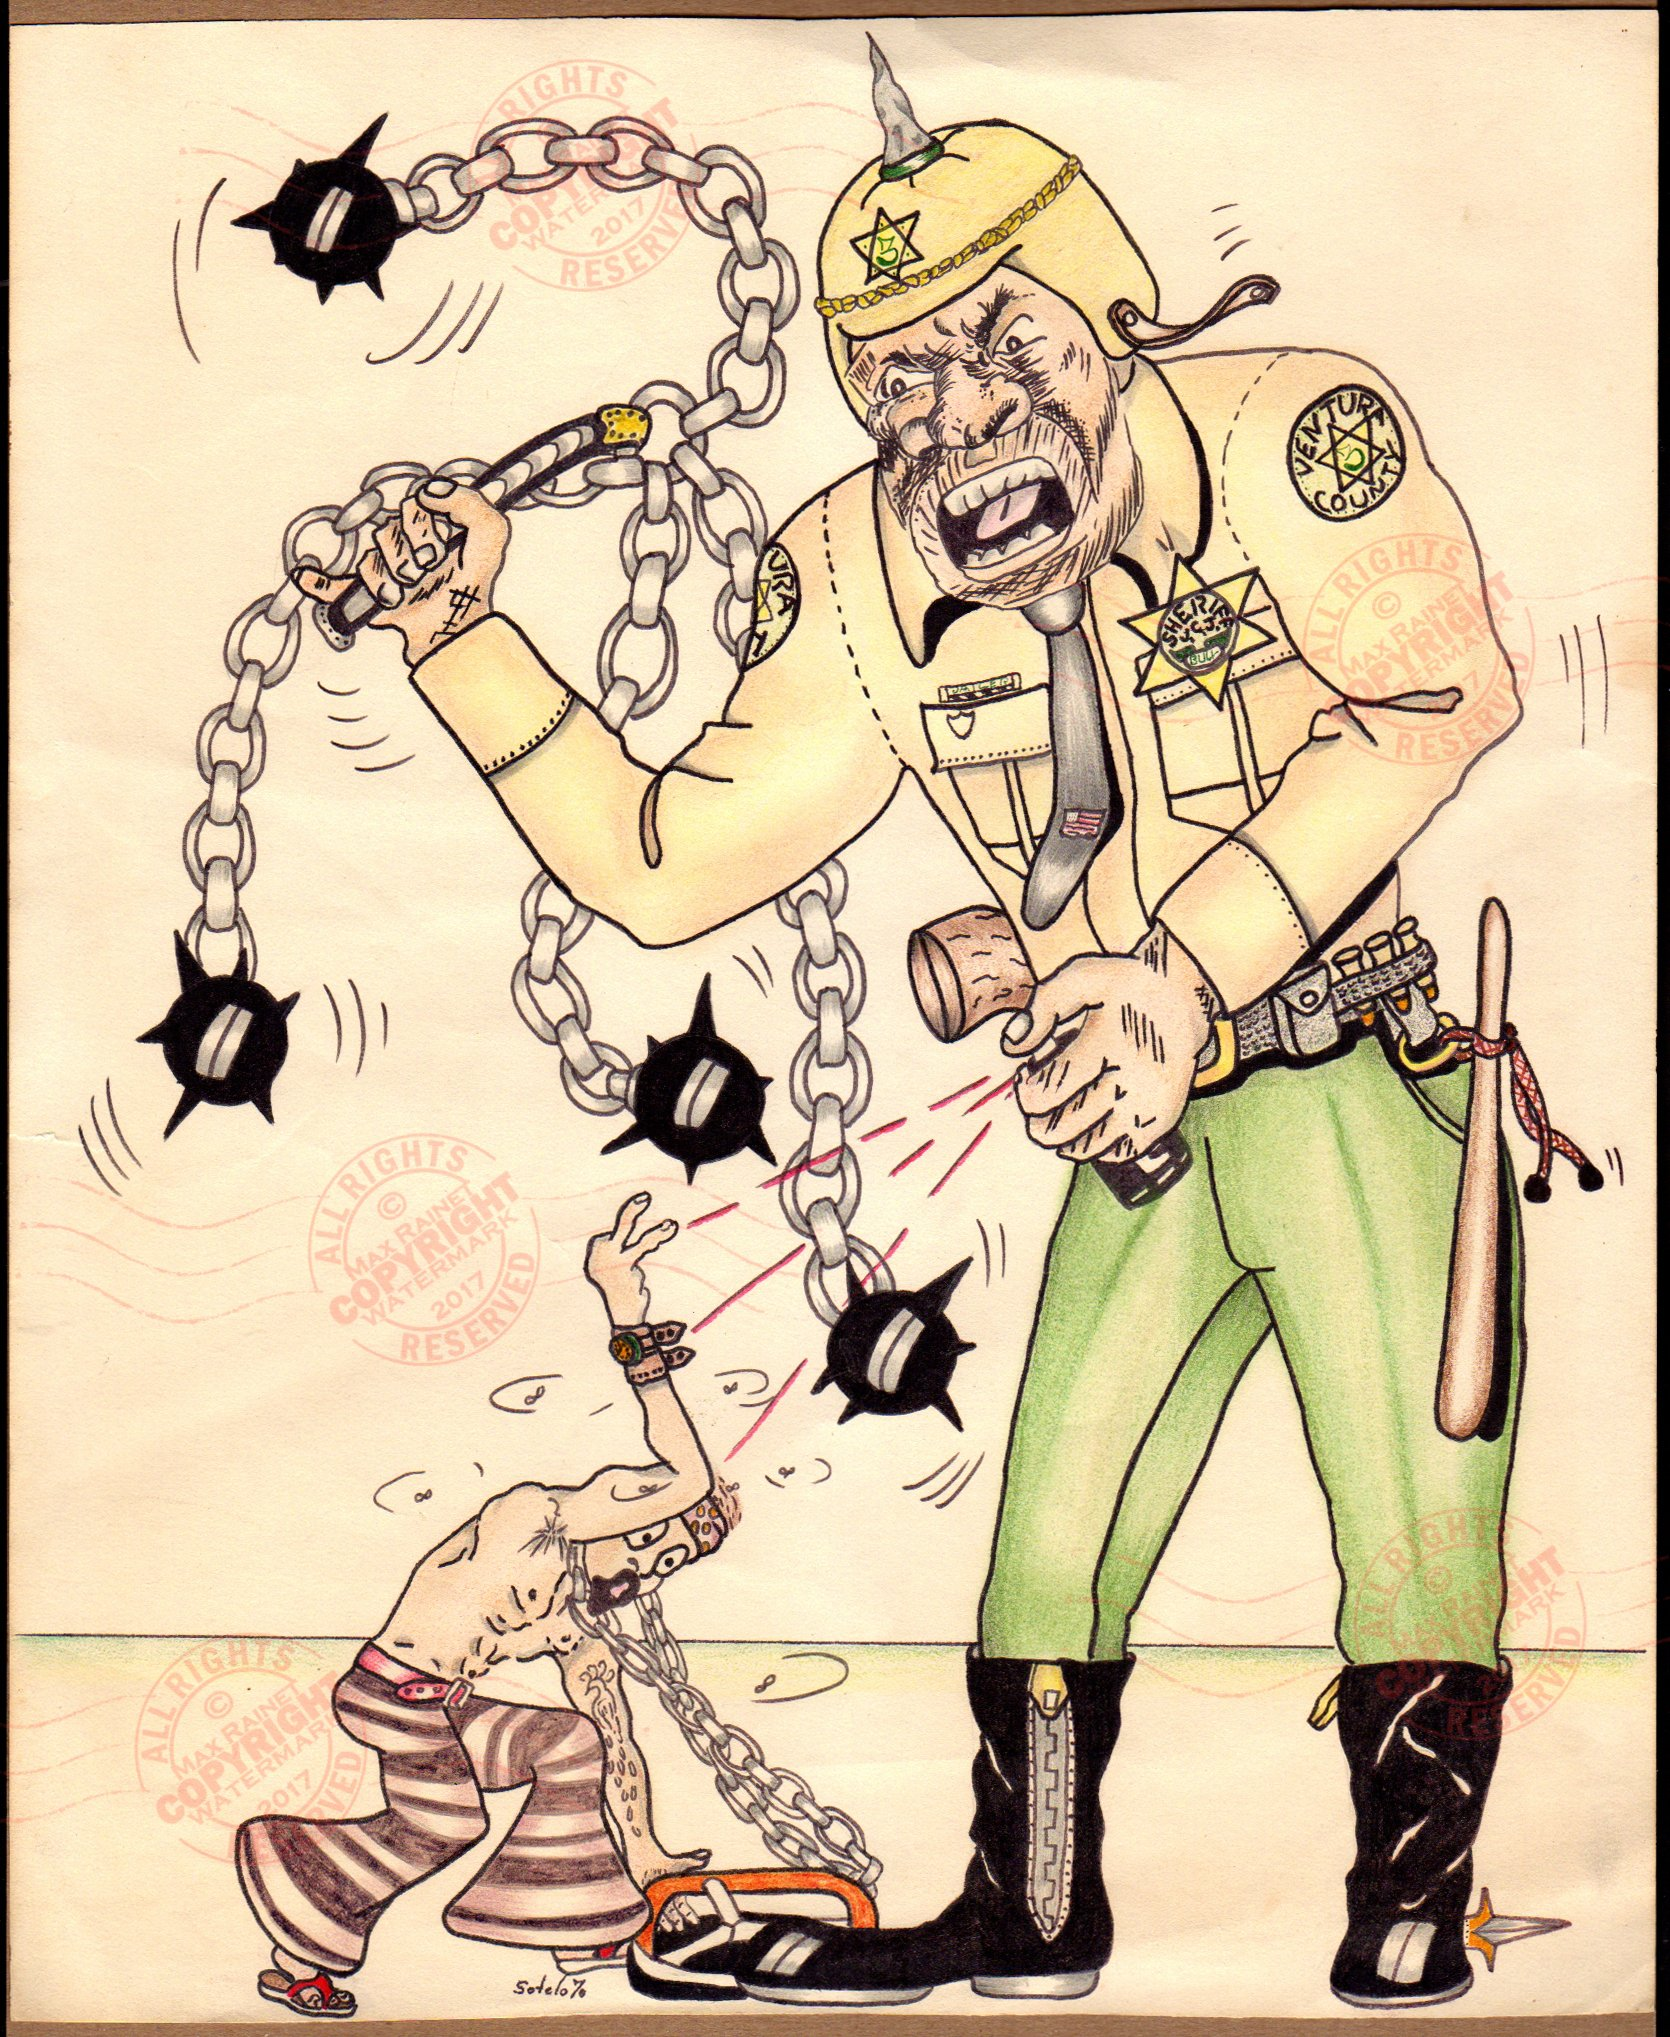 Chicano Fear of Authority by Sotelo 1970 : Original OUTSIDER ART (An original drawing depciting police / sheriff brutality in Ventura County, prison cartoon sketch, artist unknown)